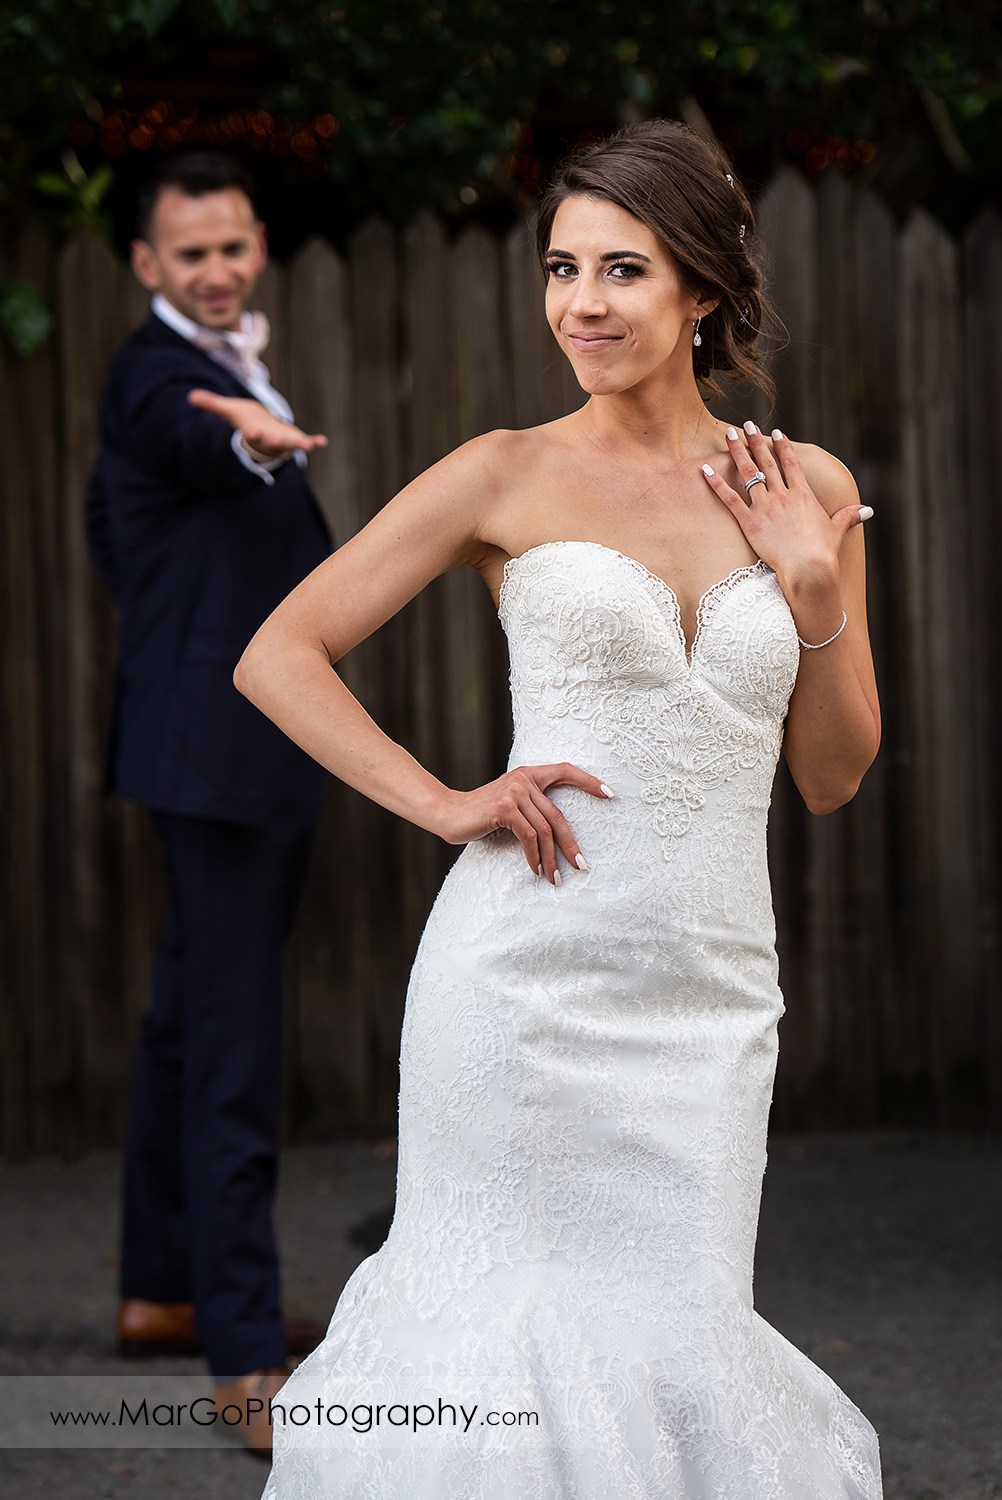 portrait of bride showing wedding ring with groom in background at San Pablo Rockefeller Lodge